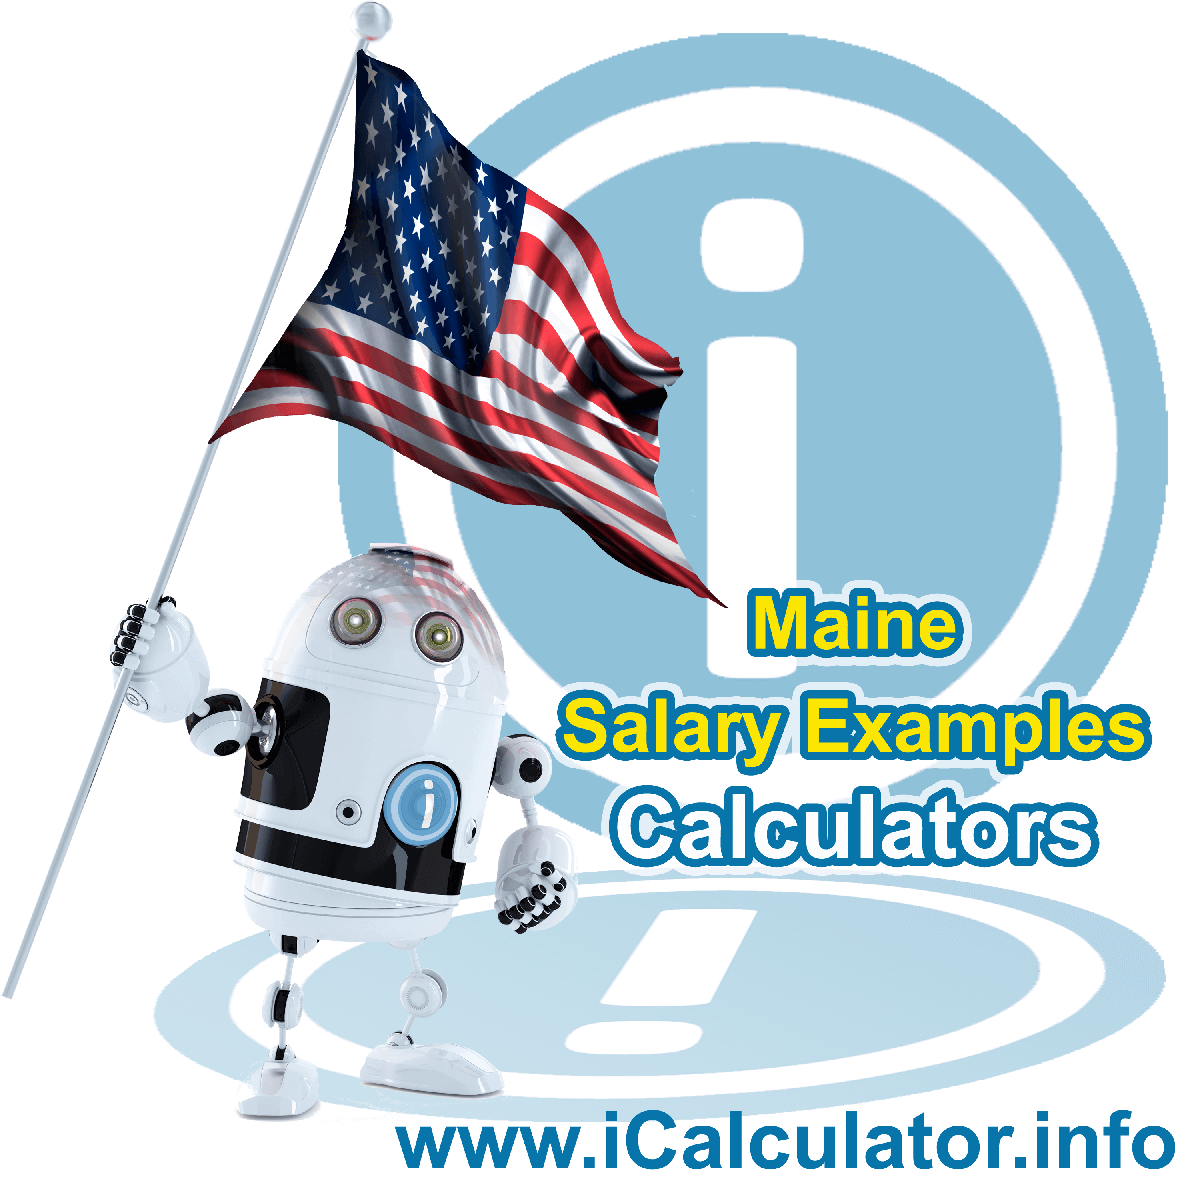 Maine Salary Example for $190.00 in 2020 | iCalculator | $190.00 salary example for employee and employer paying Maine State tincome taxes. Detailed salary after tax calculation including Maine State Tax, Federal State Tax, Medicare Deductions, Social Security, Capital Gains and other income tax and salary deductions complete with supporting Maine state tax tables